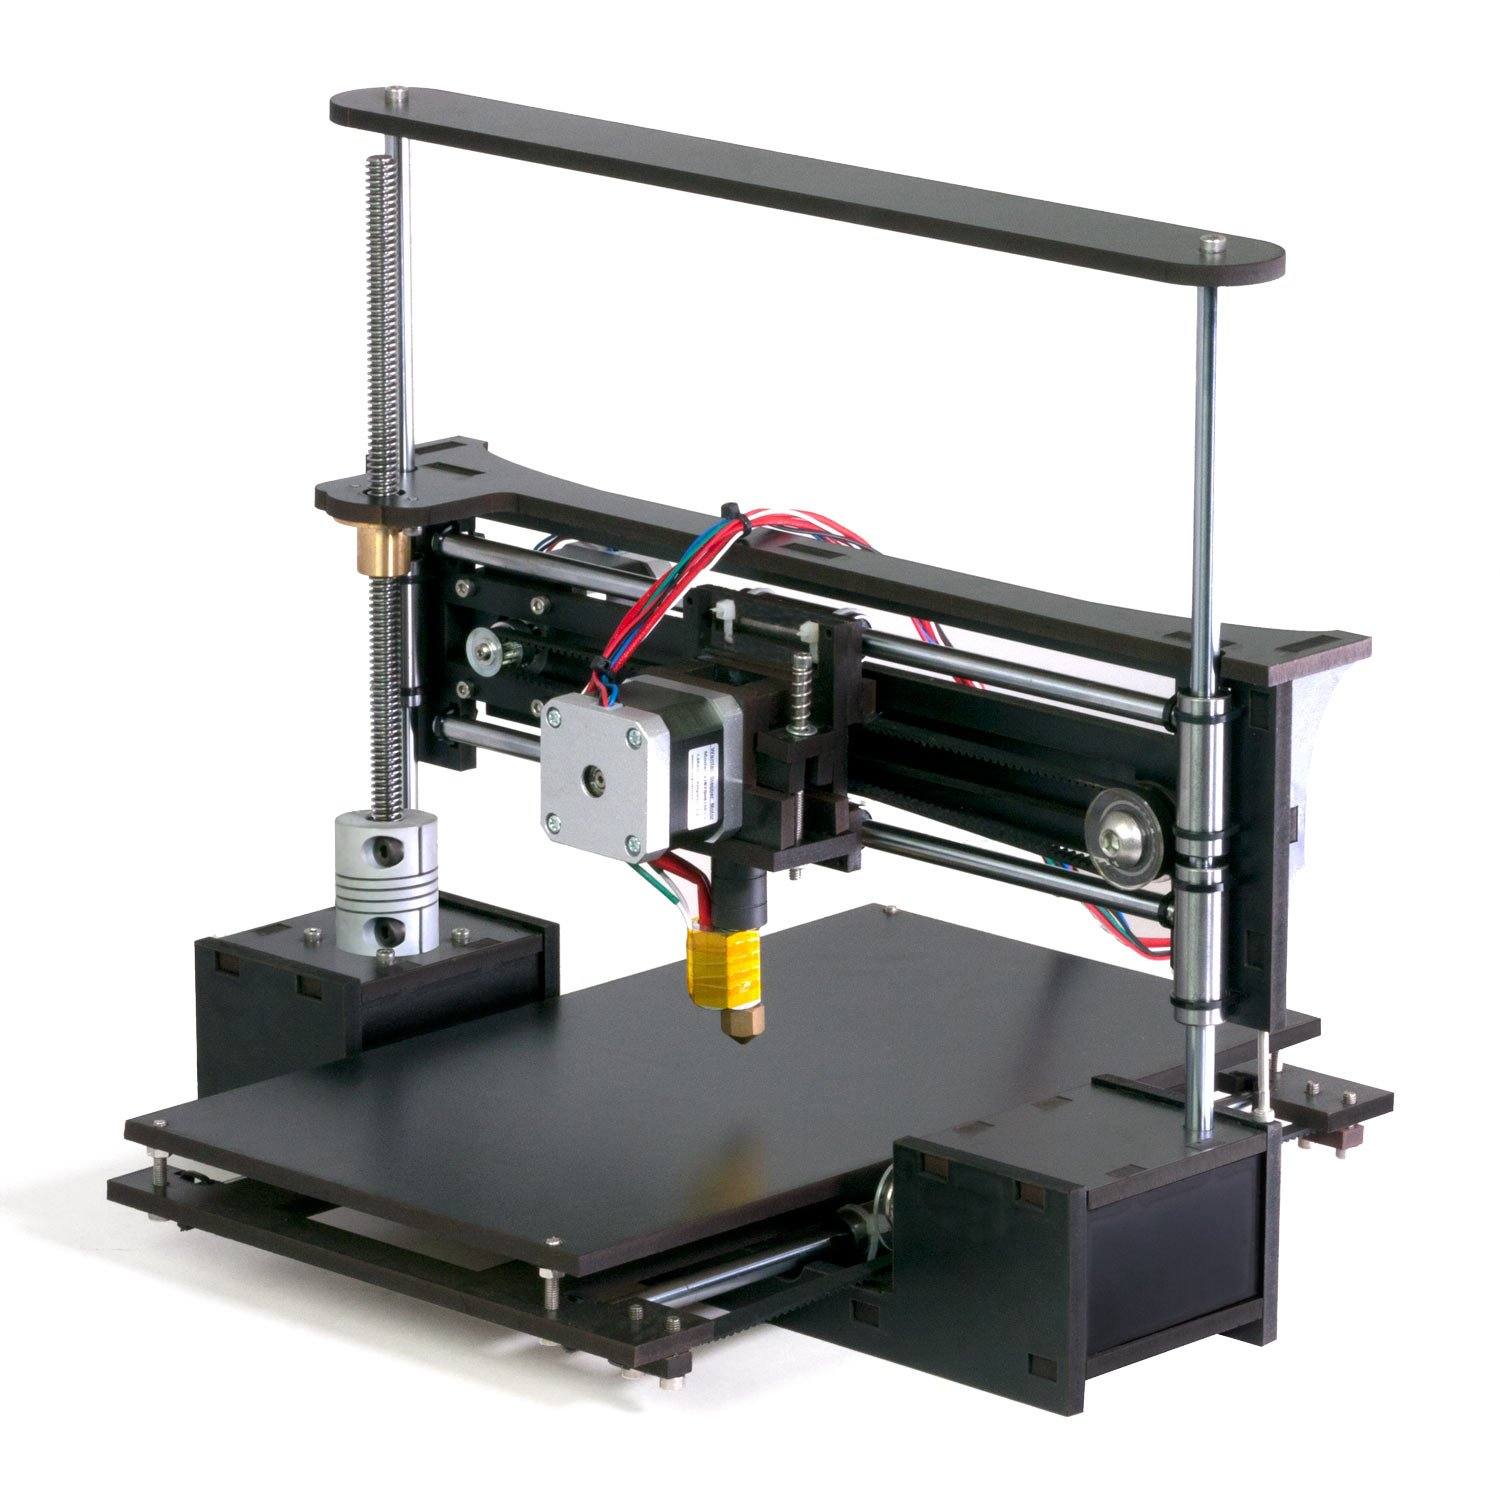 TwoUp 3D Printer Kit 7″ x 7″ x 5″